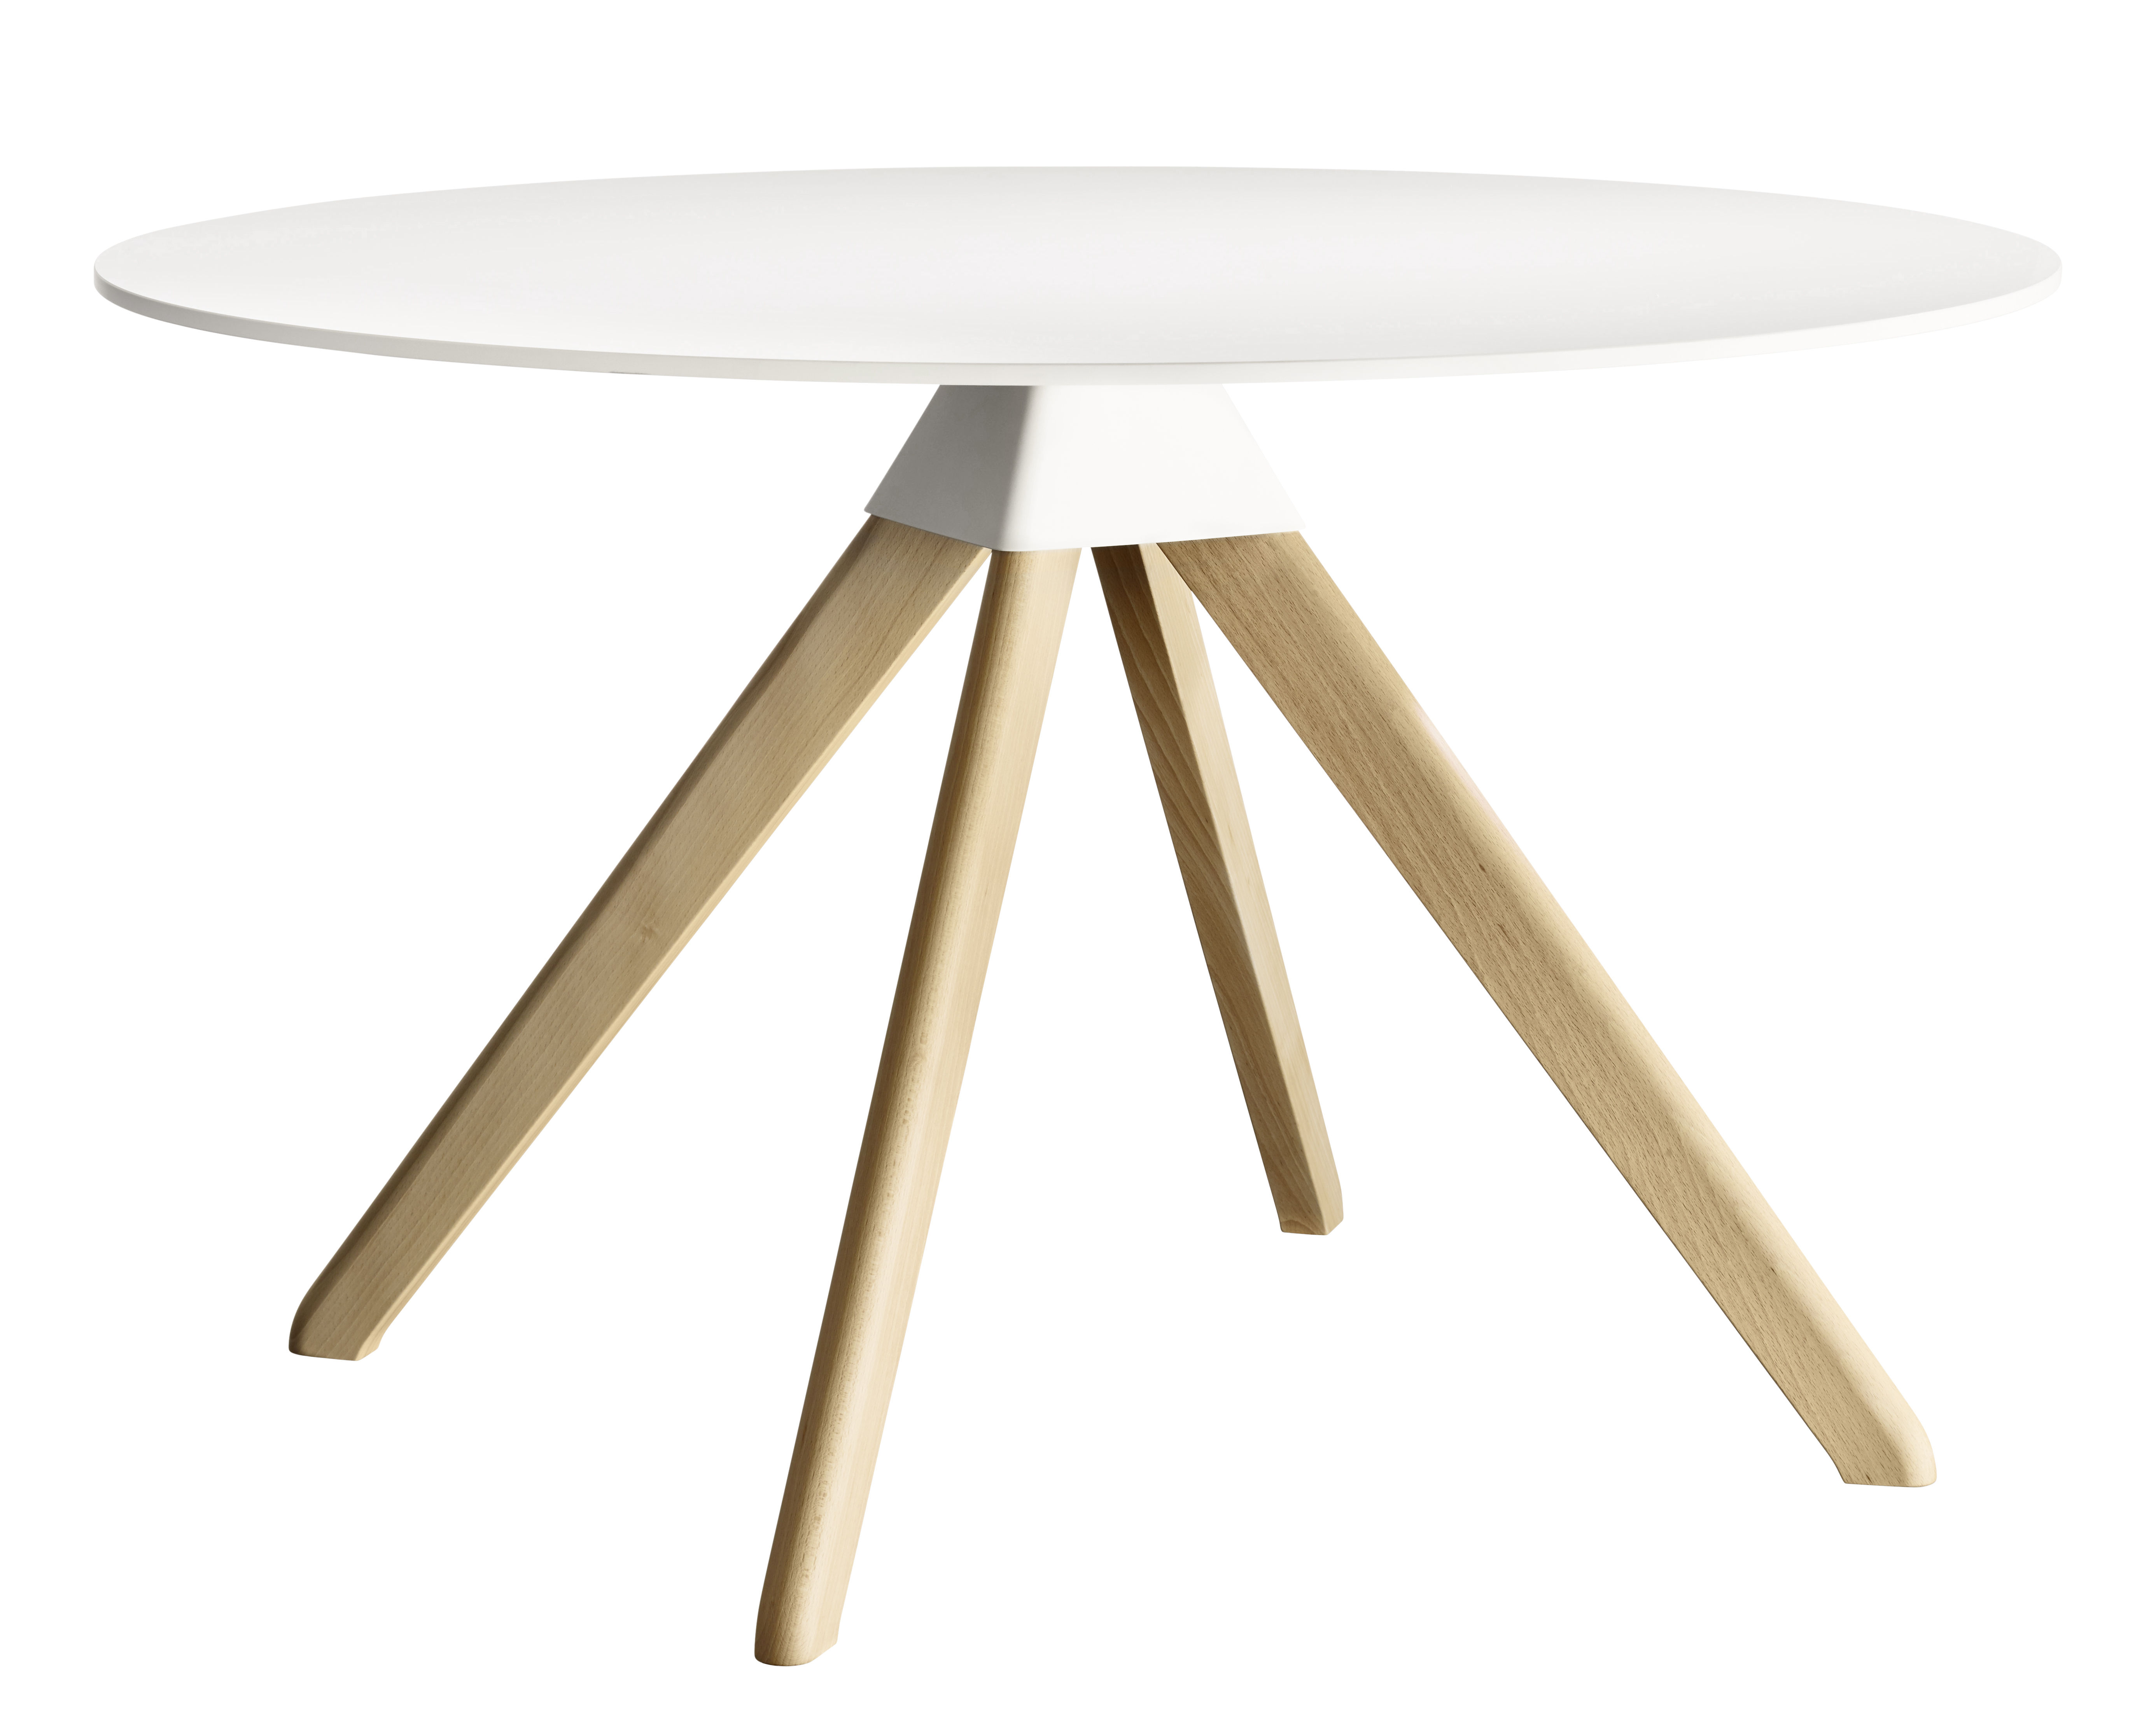 cuckoo the wild bunch table 120 cm white natural wood feet by magis. Black Bedroom Furniture Sets. Home Design Ideas